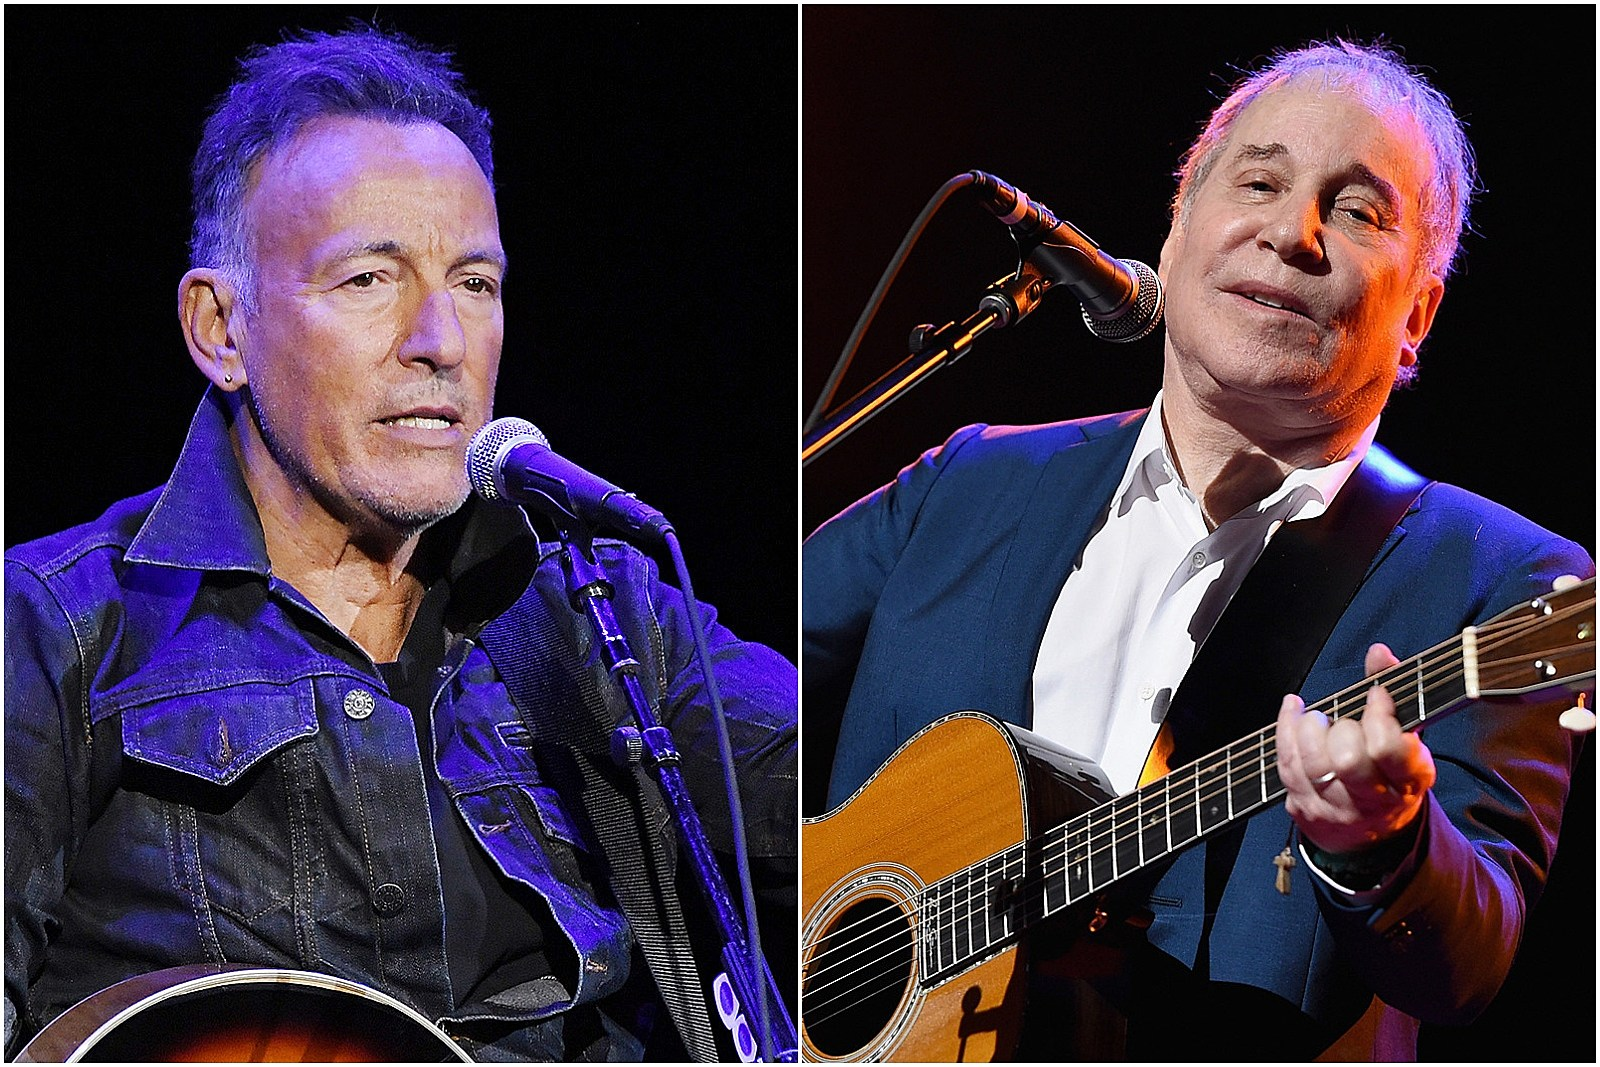 Bruce Springsteen and Paul Simon to Play Central Park Concert